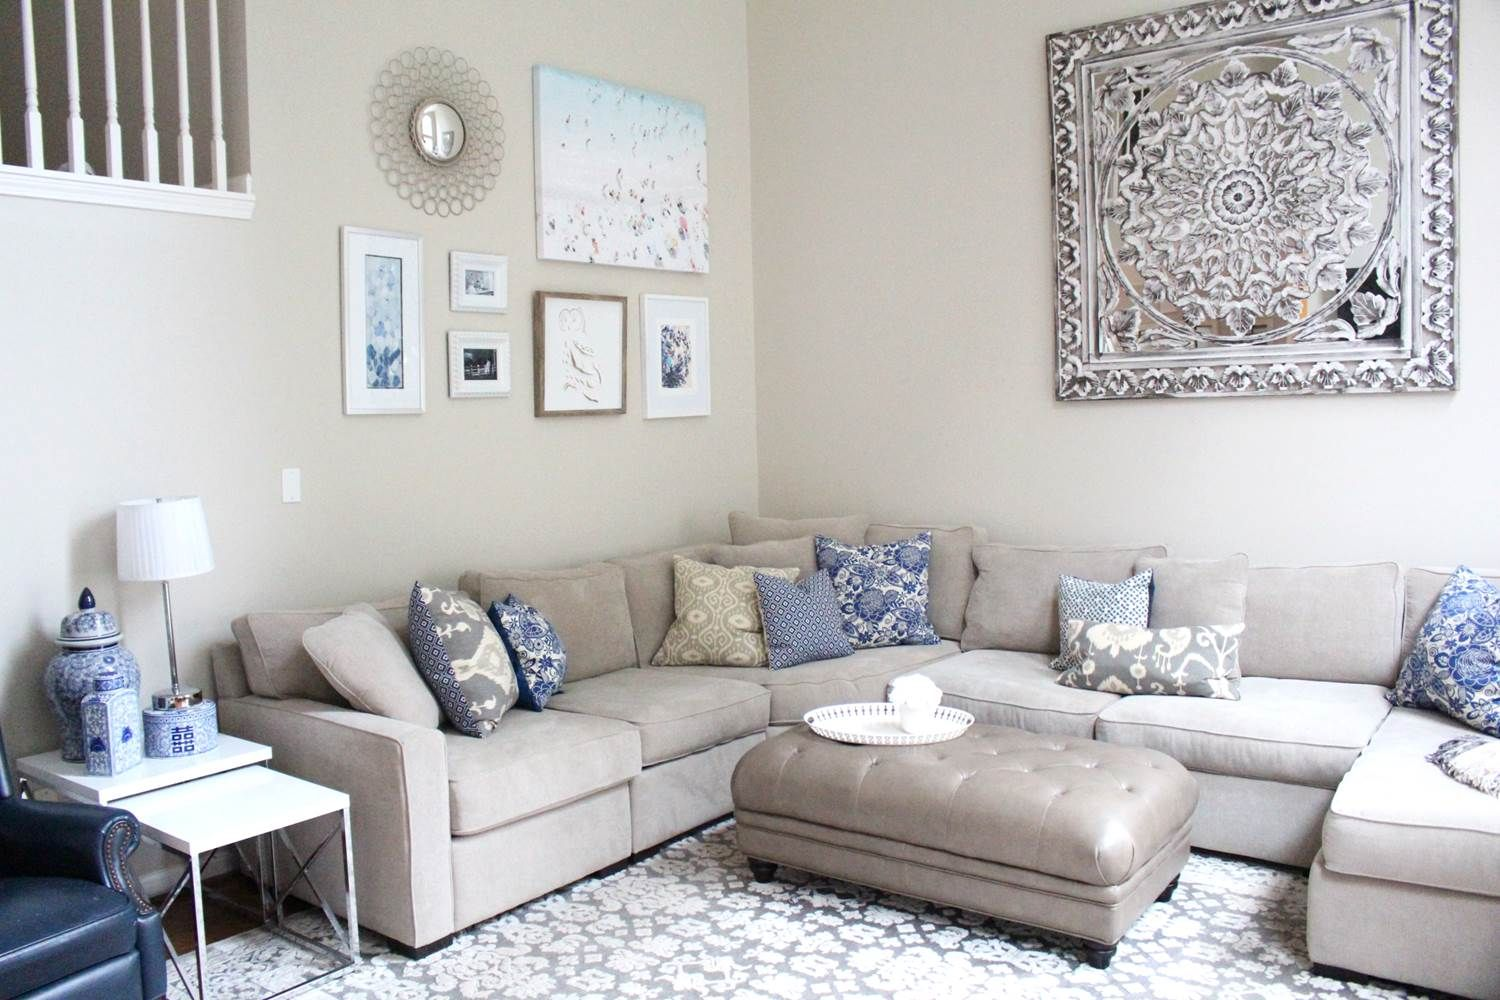 home decor 101 neutral agreeable gray blue living room - Home Decor 101